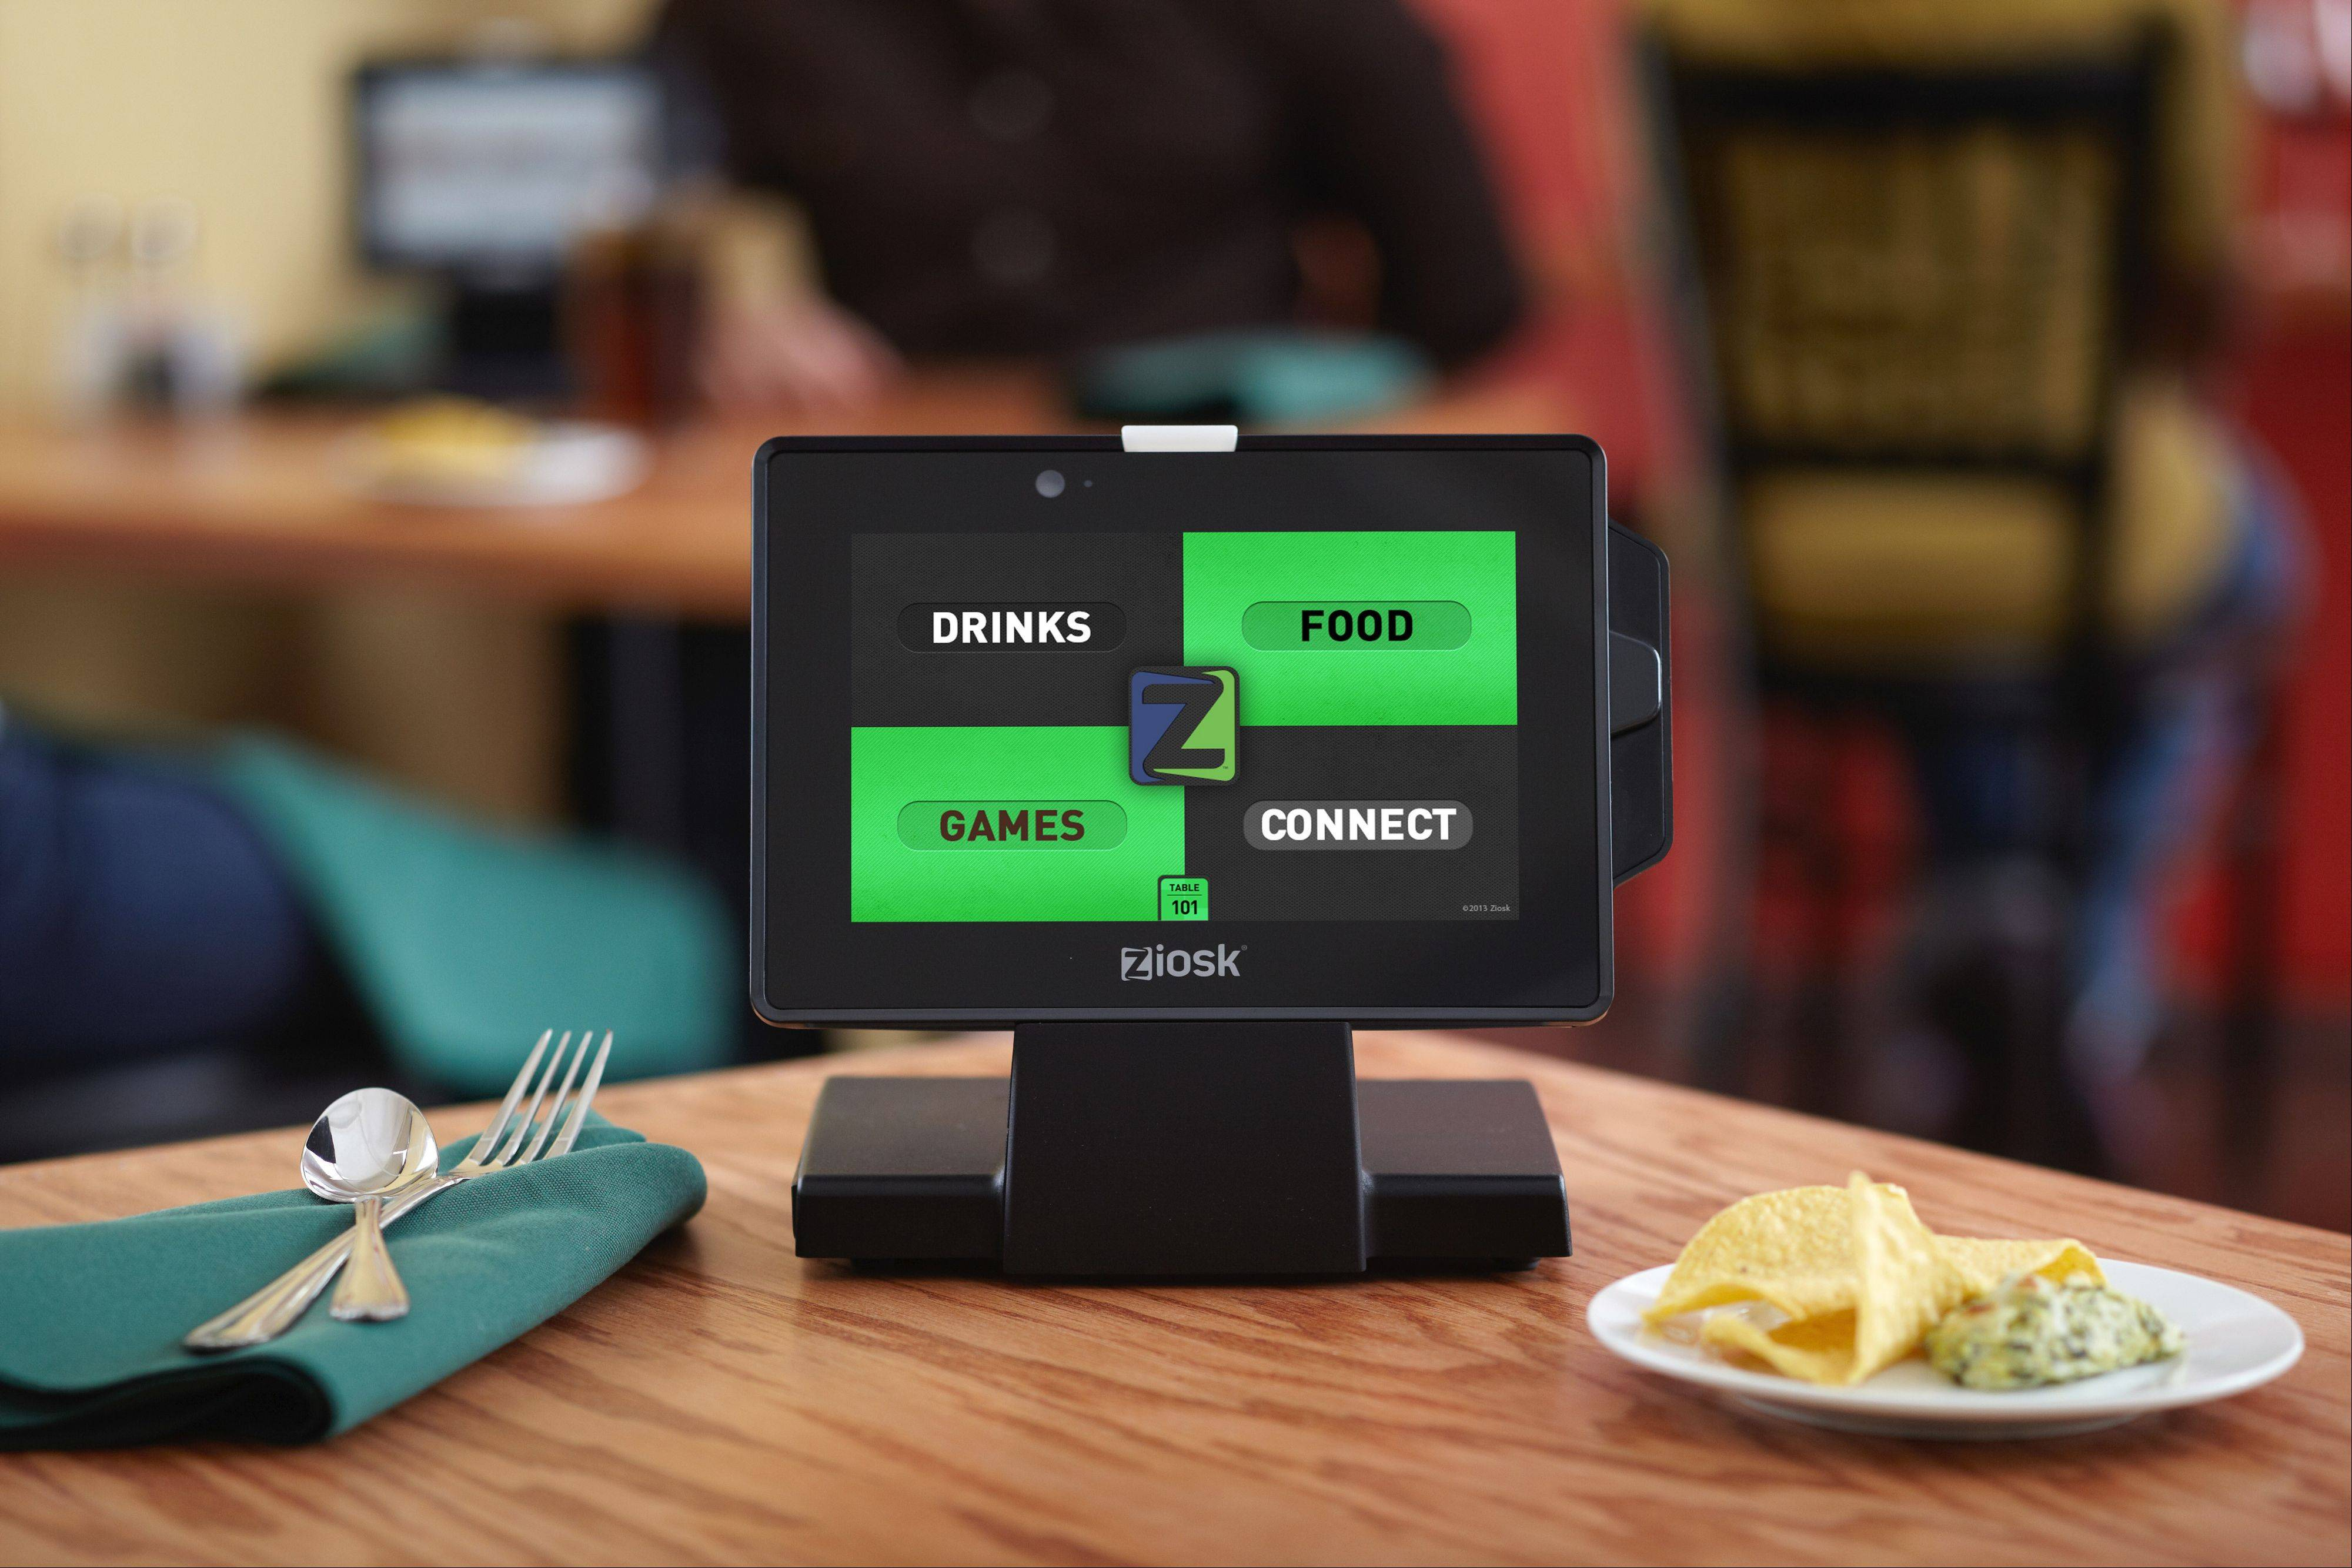 Dallas, Texas-based Ziosk has updated its tabletop tablet where restaurant customers can order food, pay their bill and even get entertainment while waiting for their meal. Chili's restaurants around the suburbs now offer the upgraded tablet with a touch screen and more features.